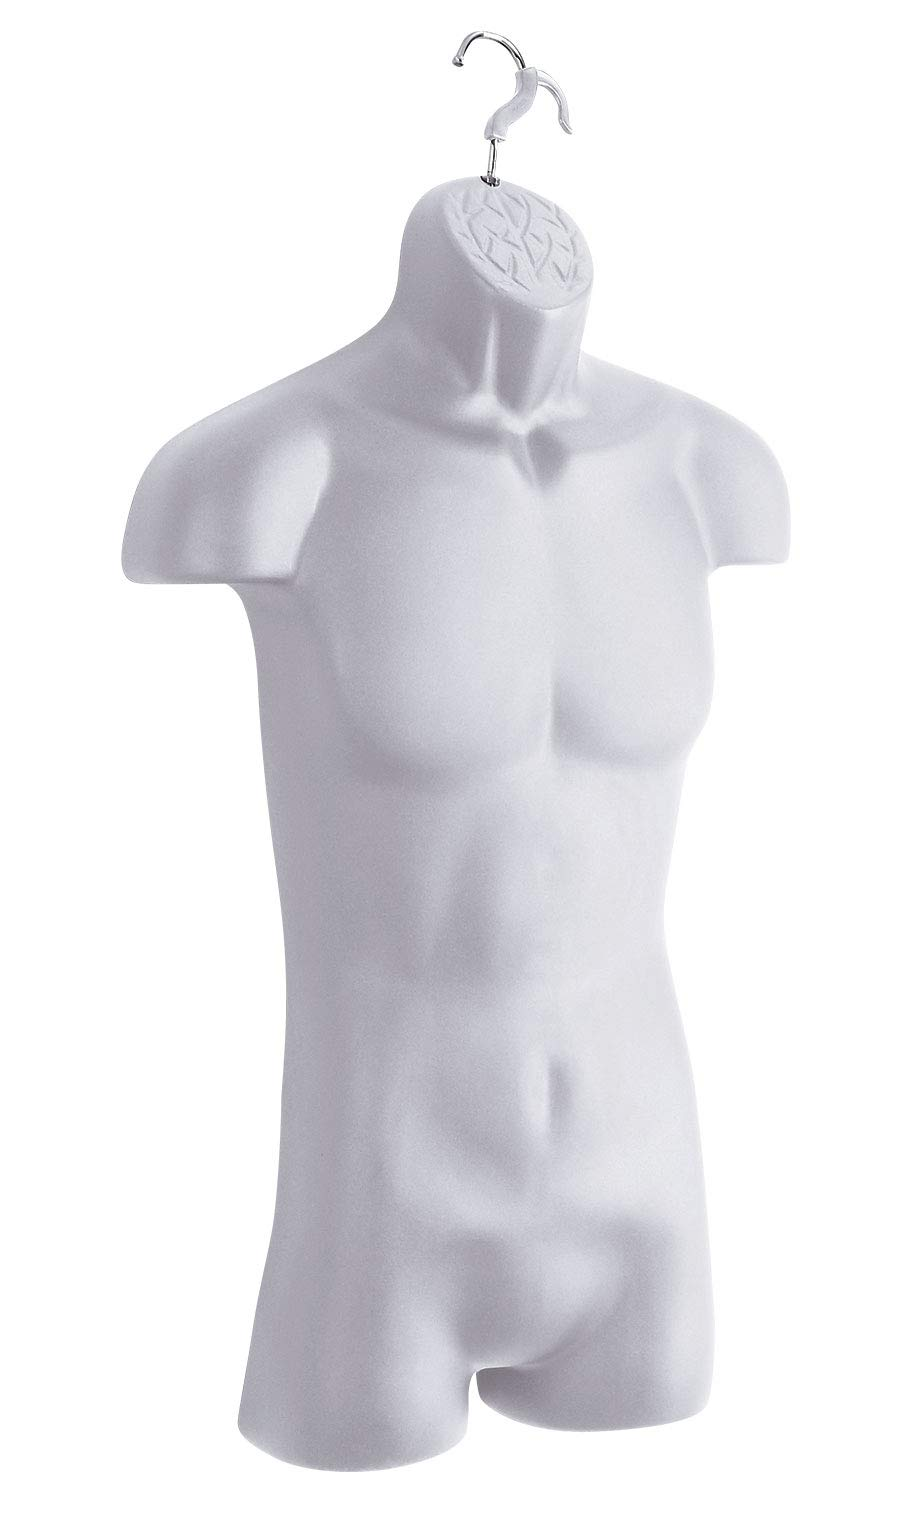 Male Molded White Torso Form - Fits Men's Sizes S-L